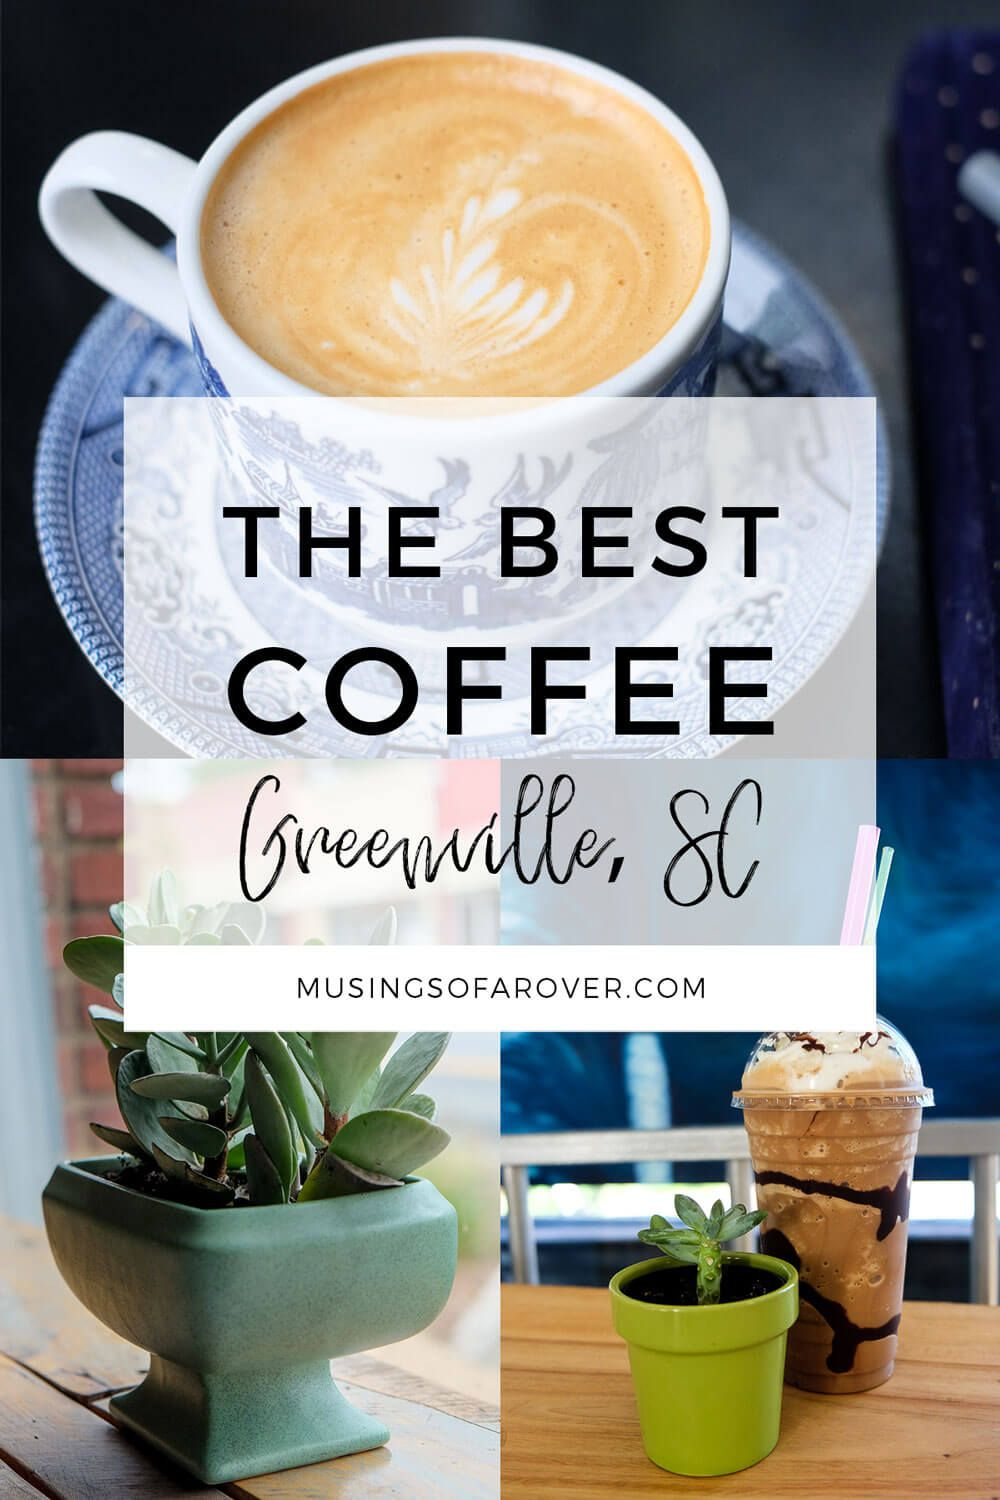 Looking for the best coffee in Greenville South Carolina (Greenville SC)? Head to Coffee Underground, Methodical, The Village Grind, Espresso 101, West End Coffee Shop, and Joe's Place. travel tips, travel advice, greenville sc things to do, greenville south carolina things to do